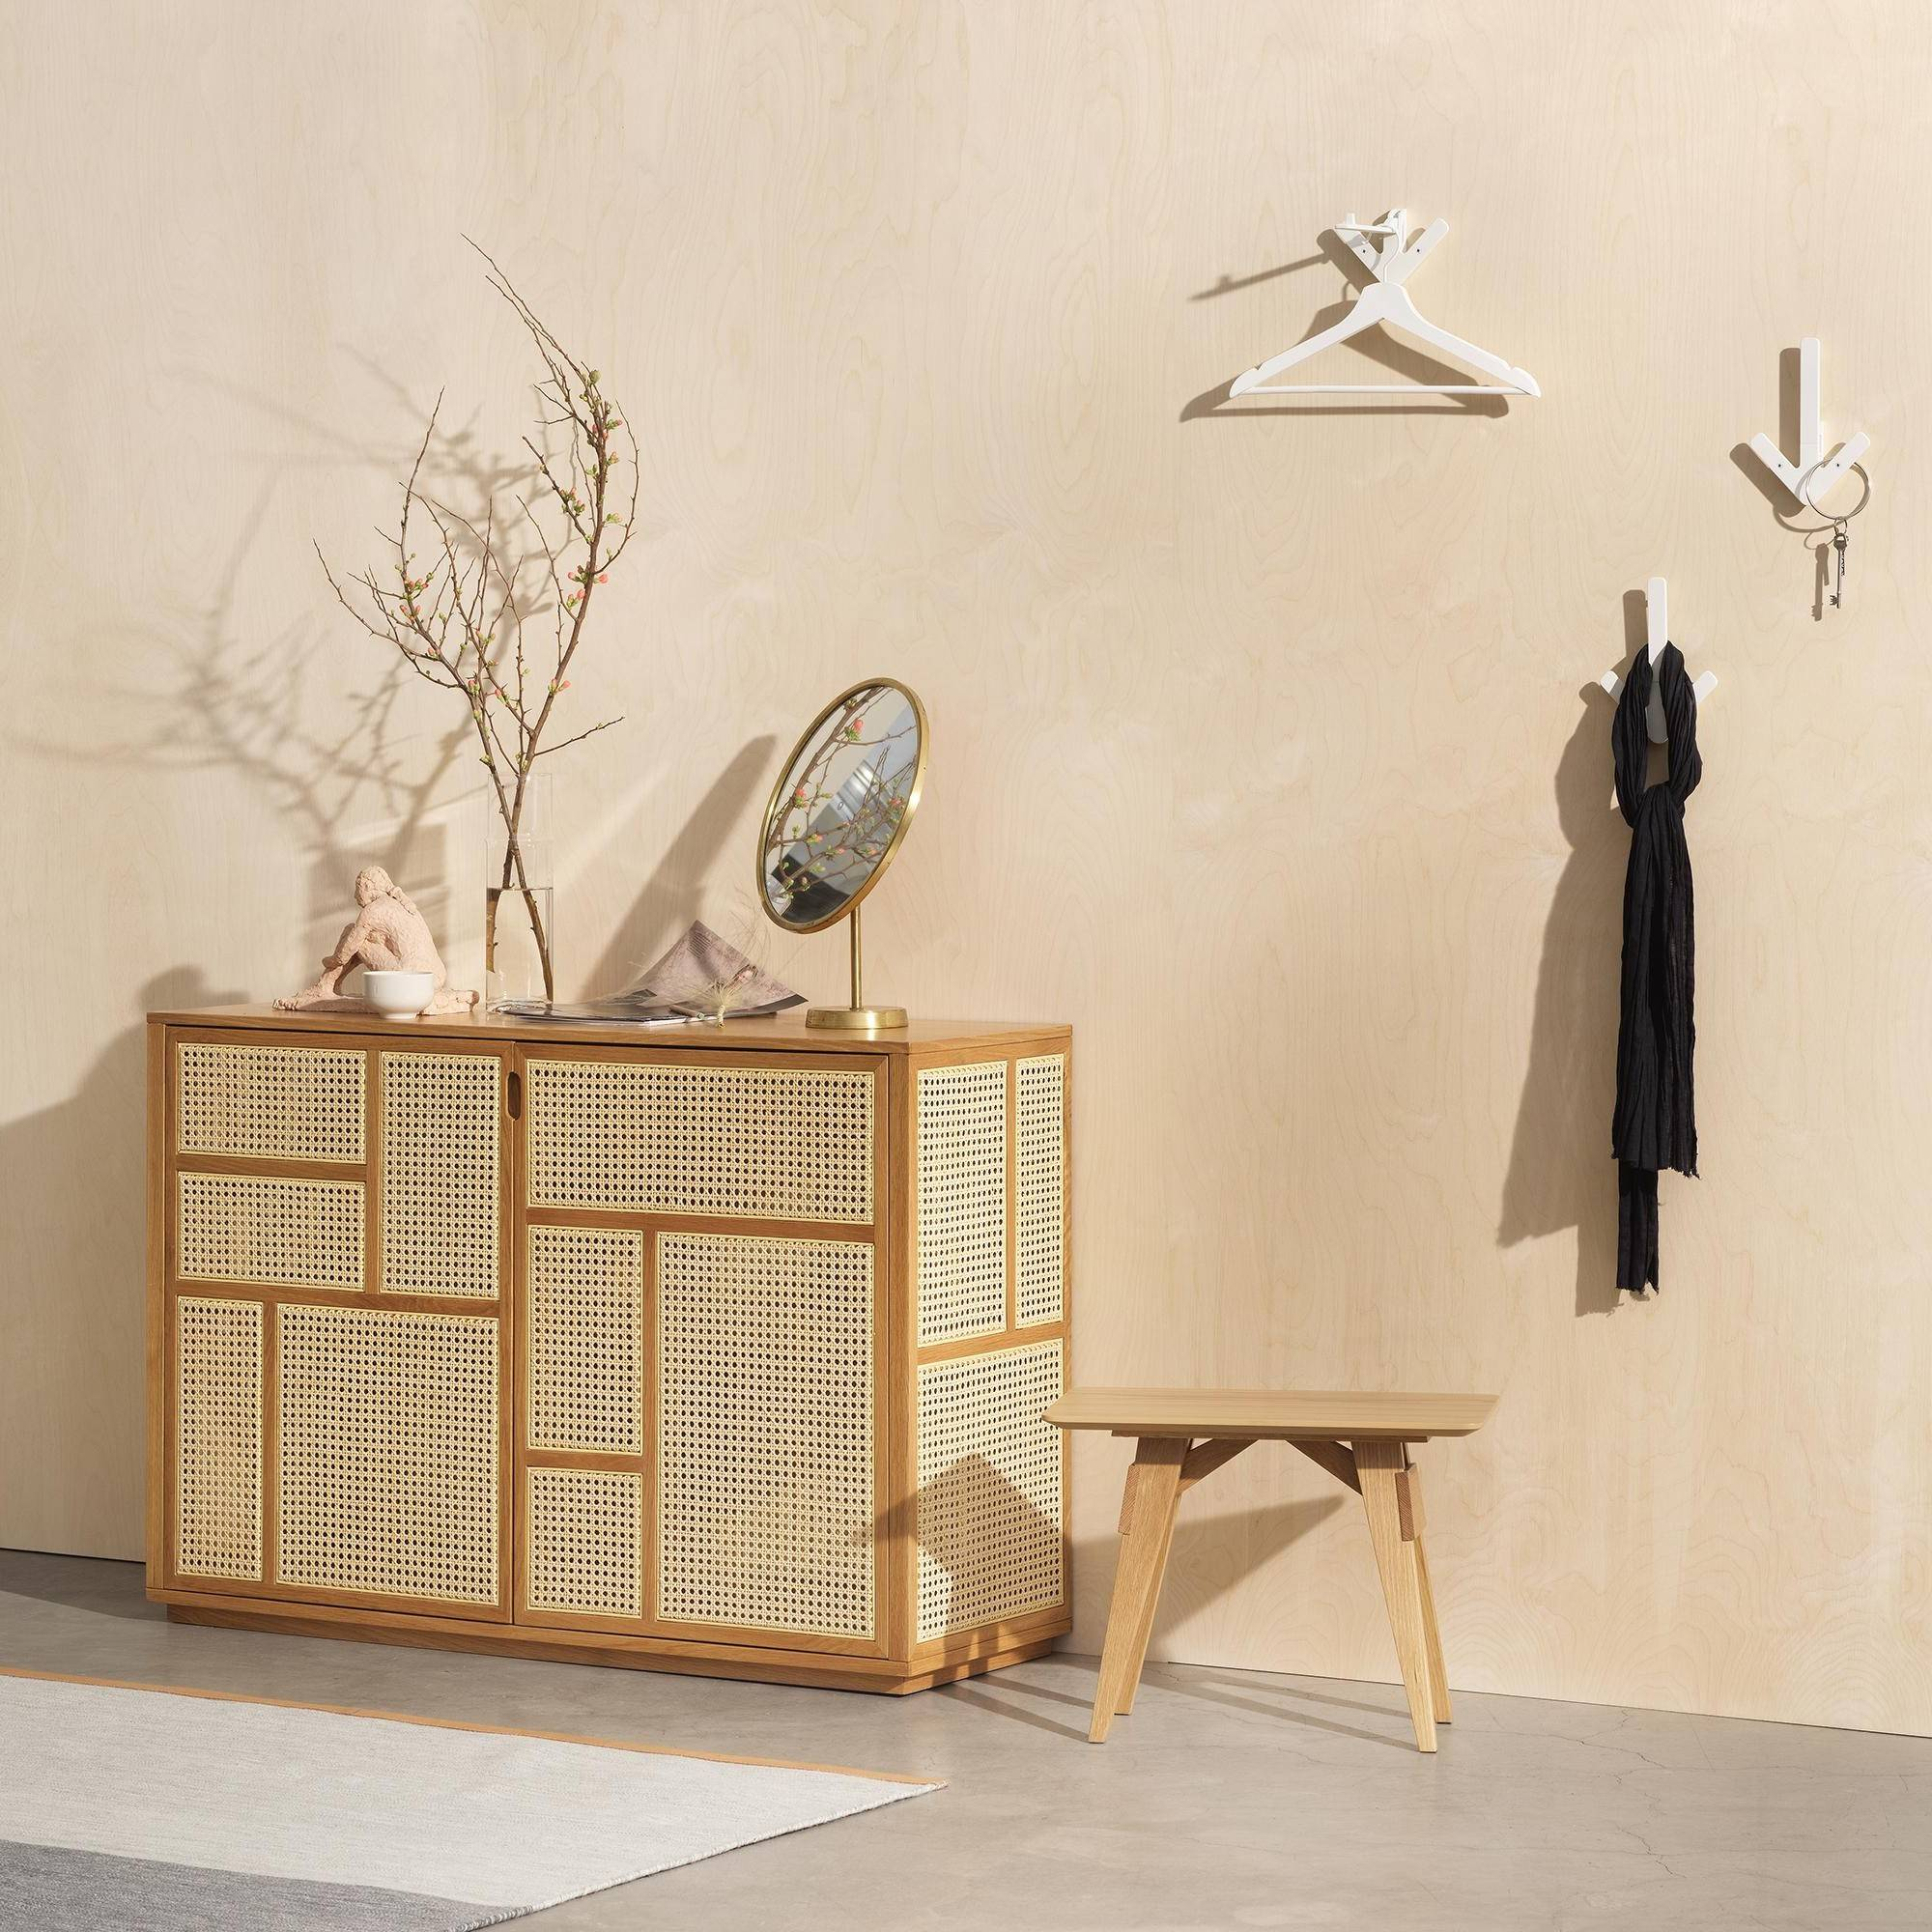 Air Collection, de Mathieu Gustafsson para Design House Stockholm